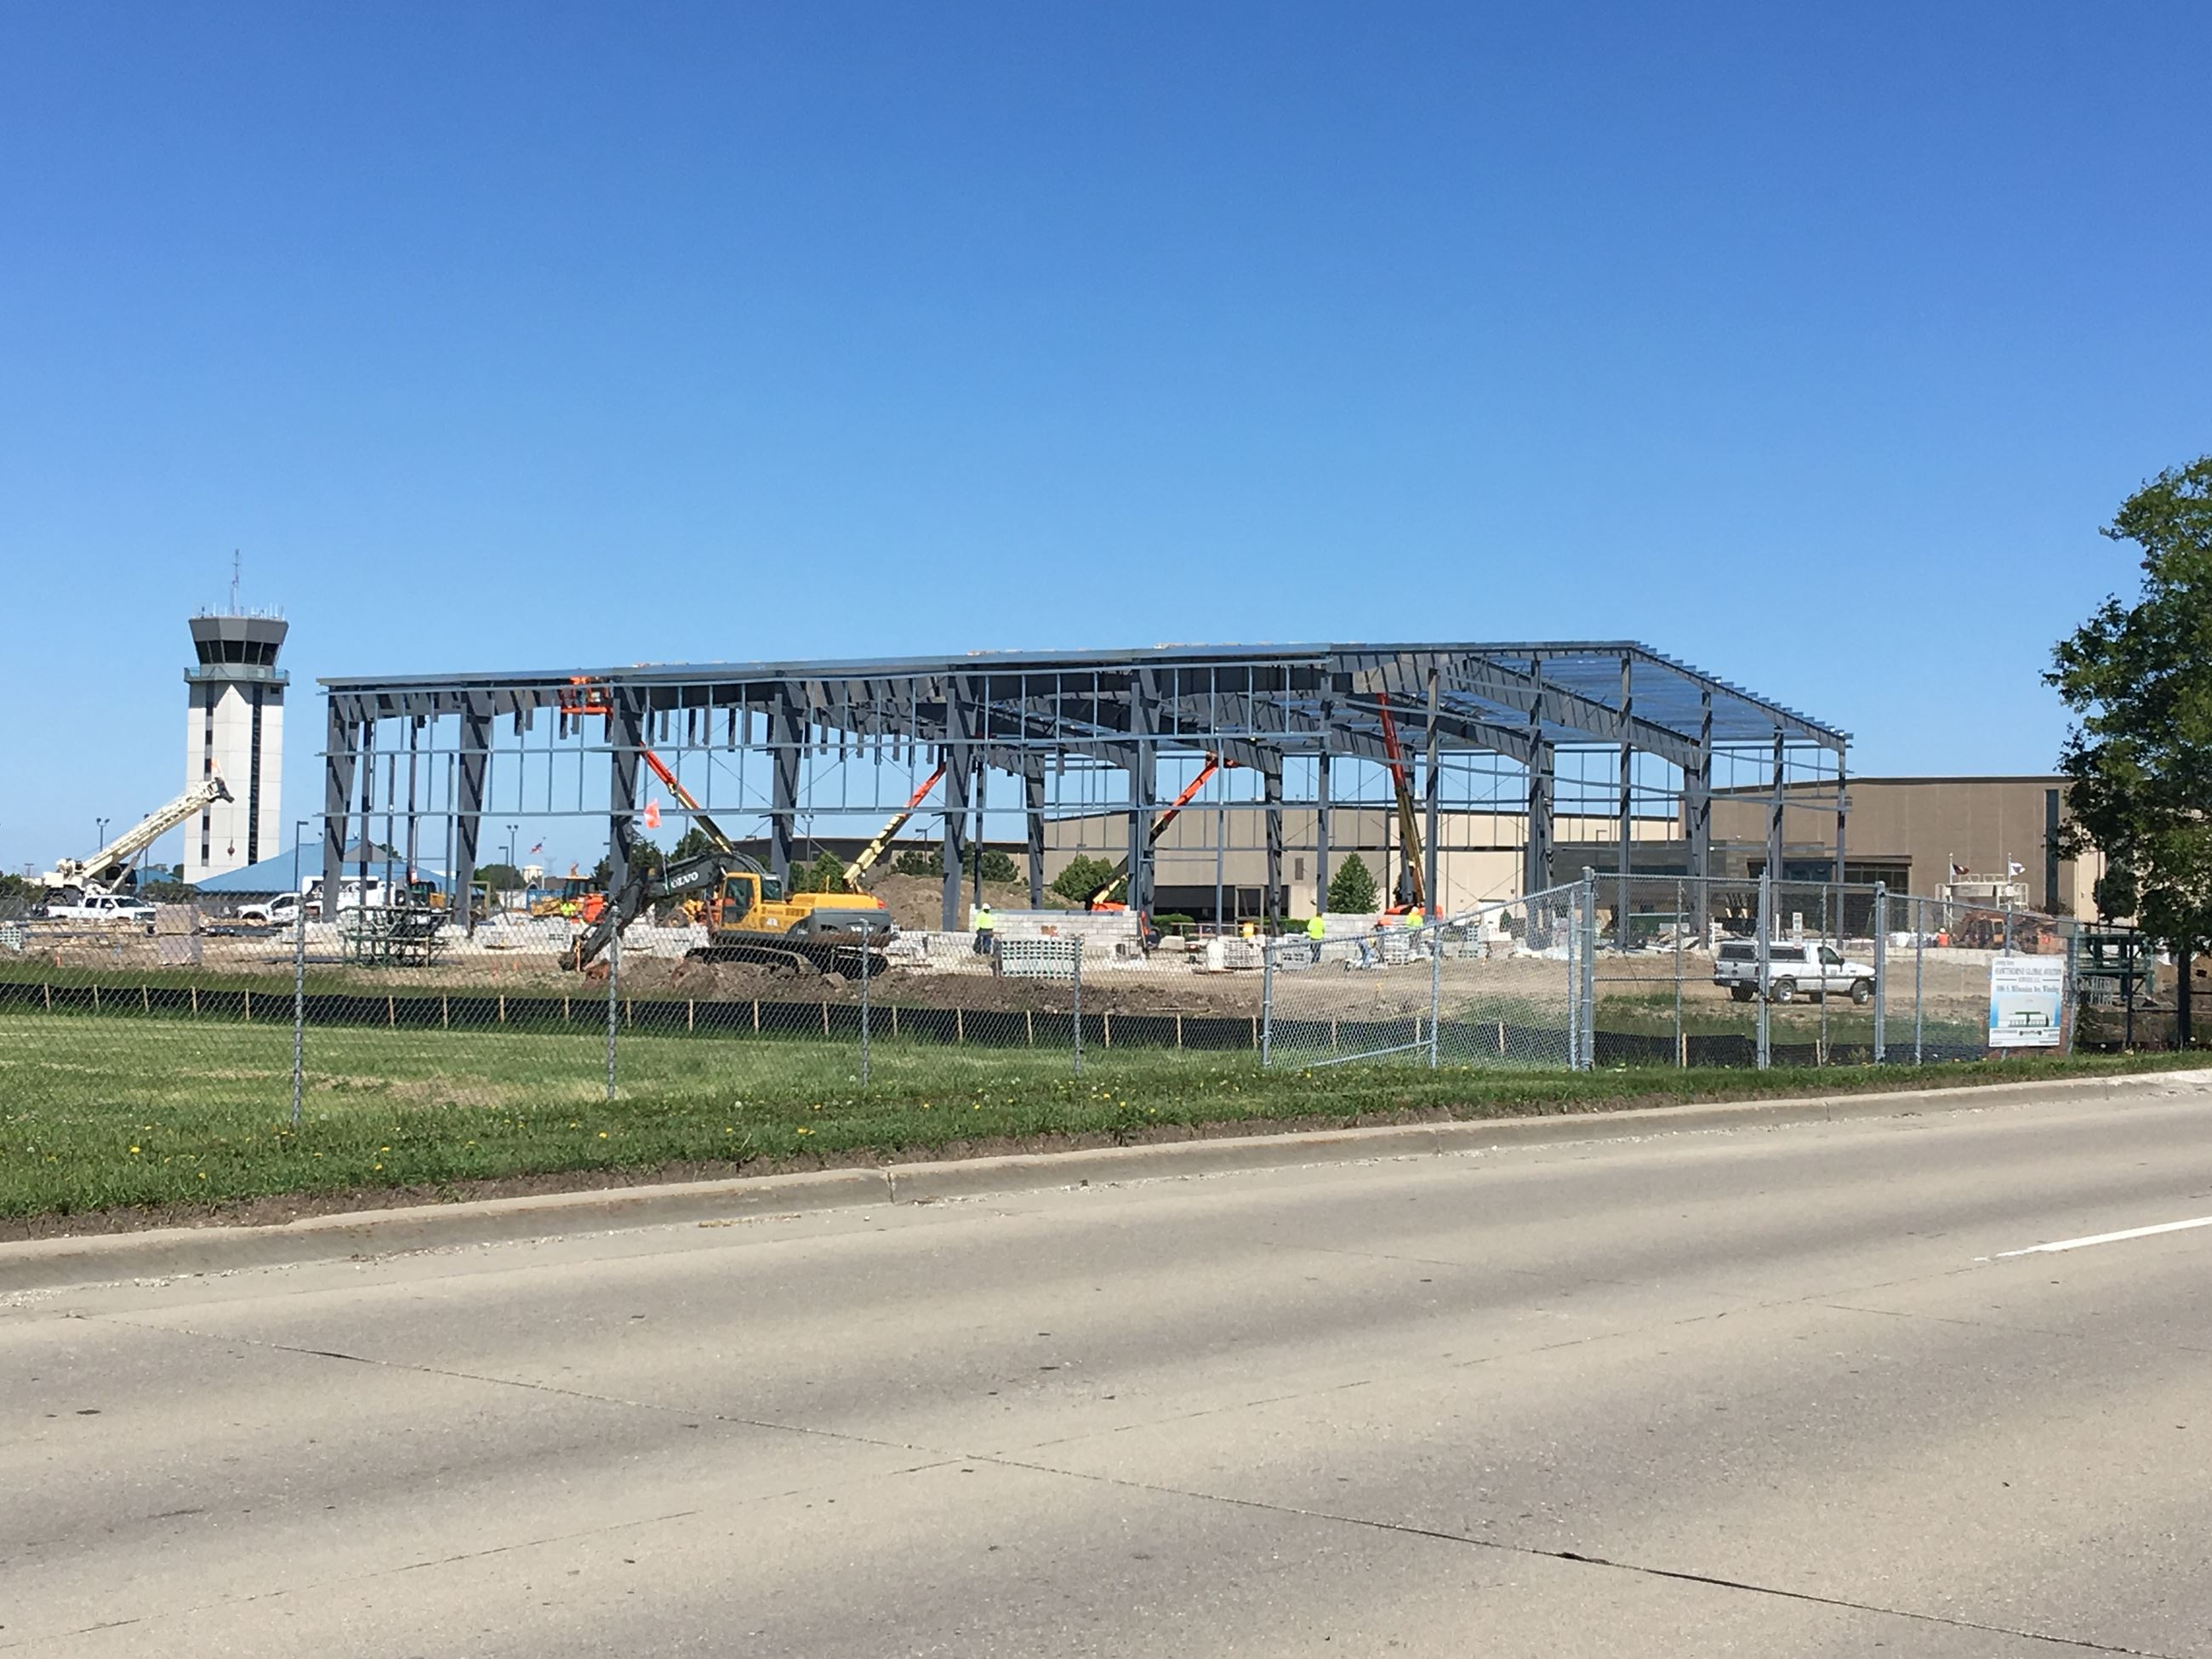 Hawthorne Aviation - Hangar Construction 6-4-18